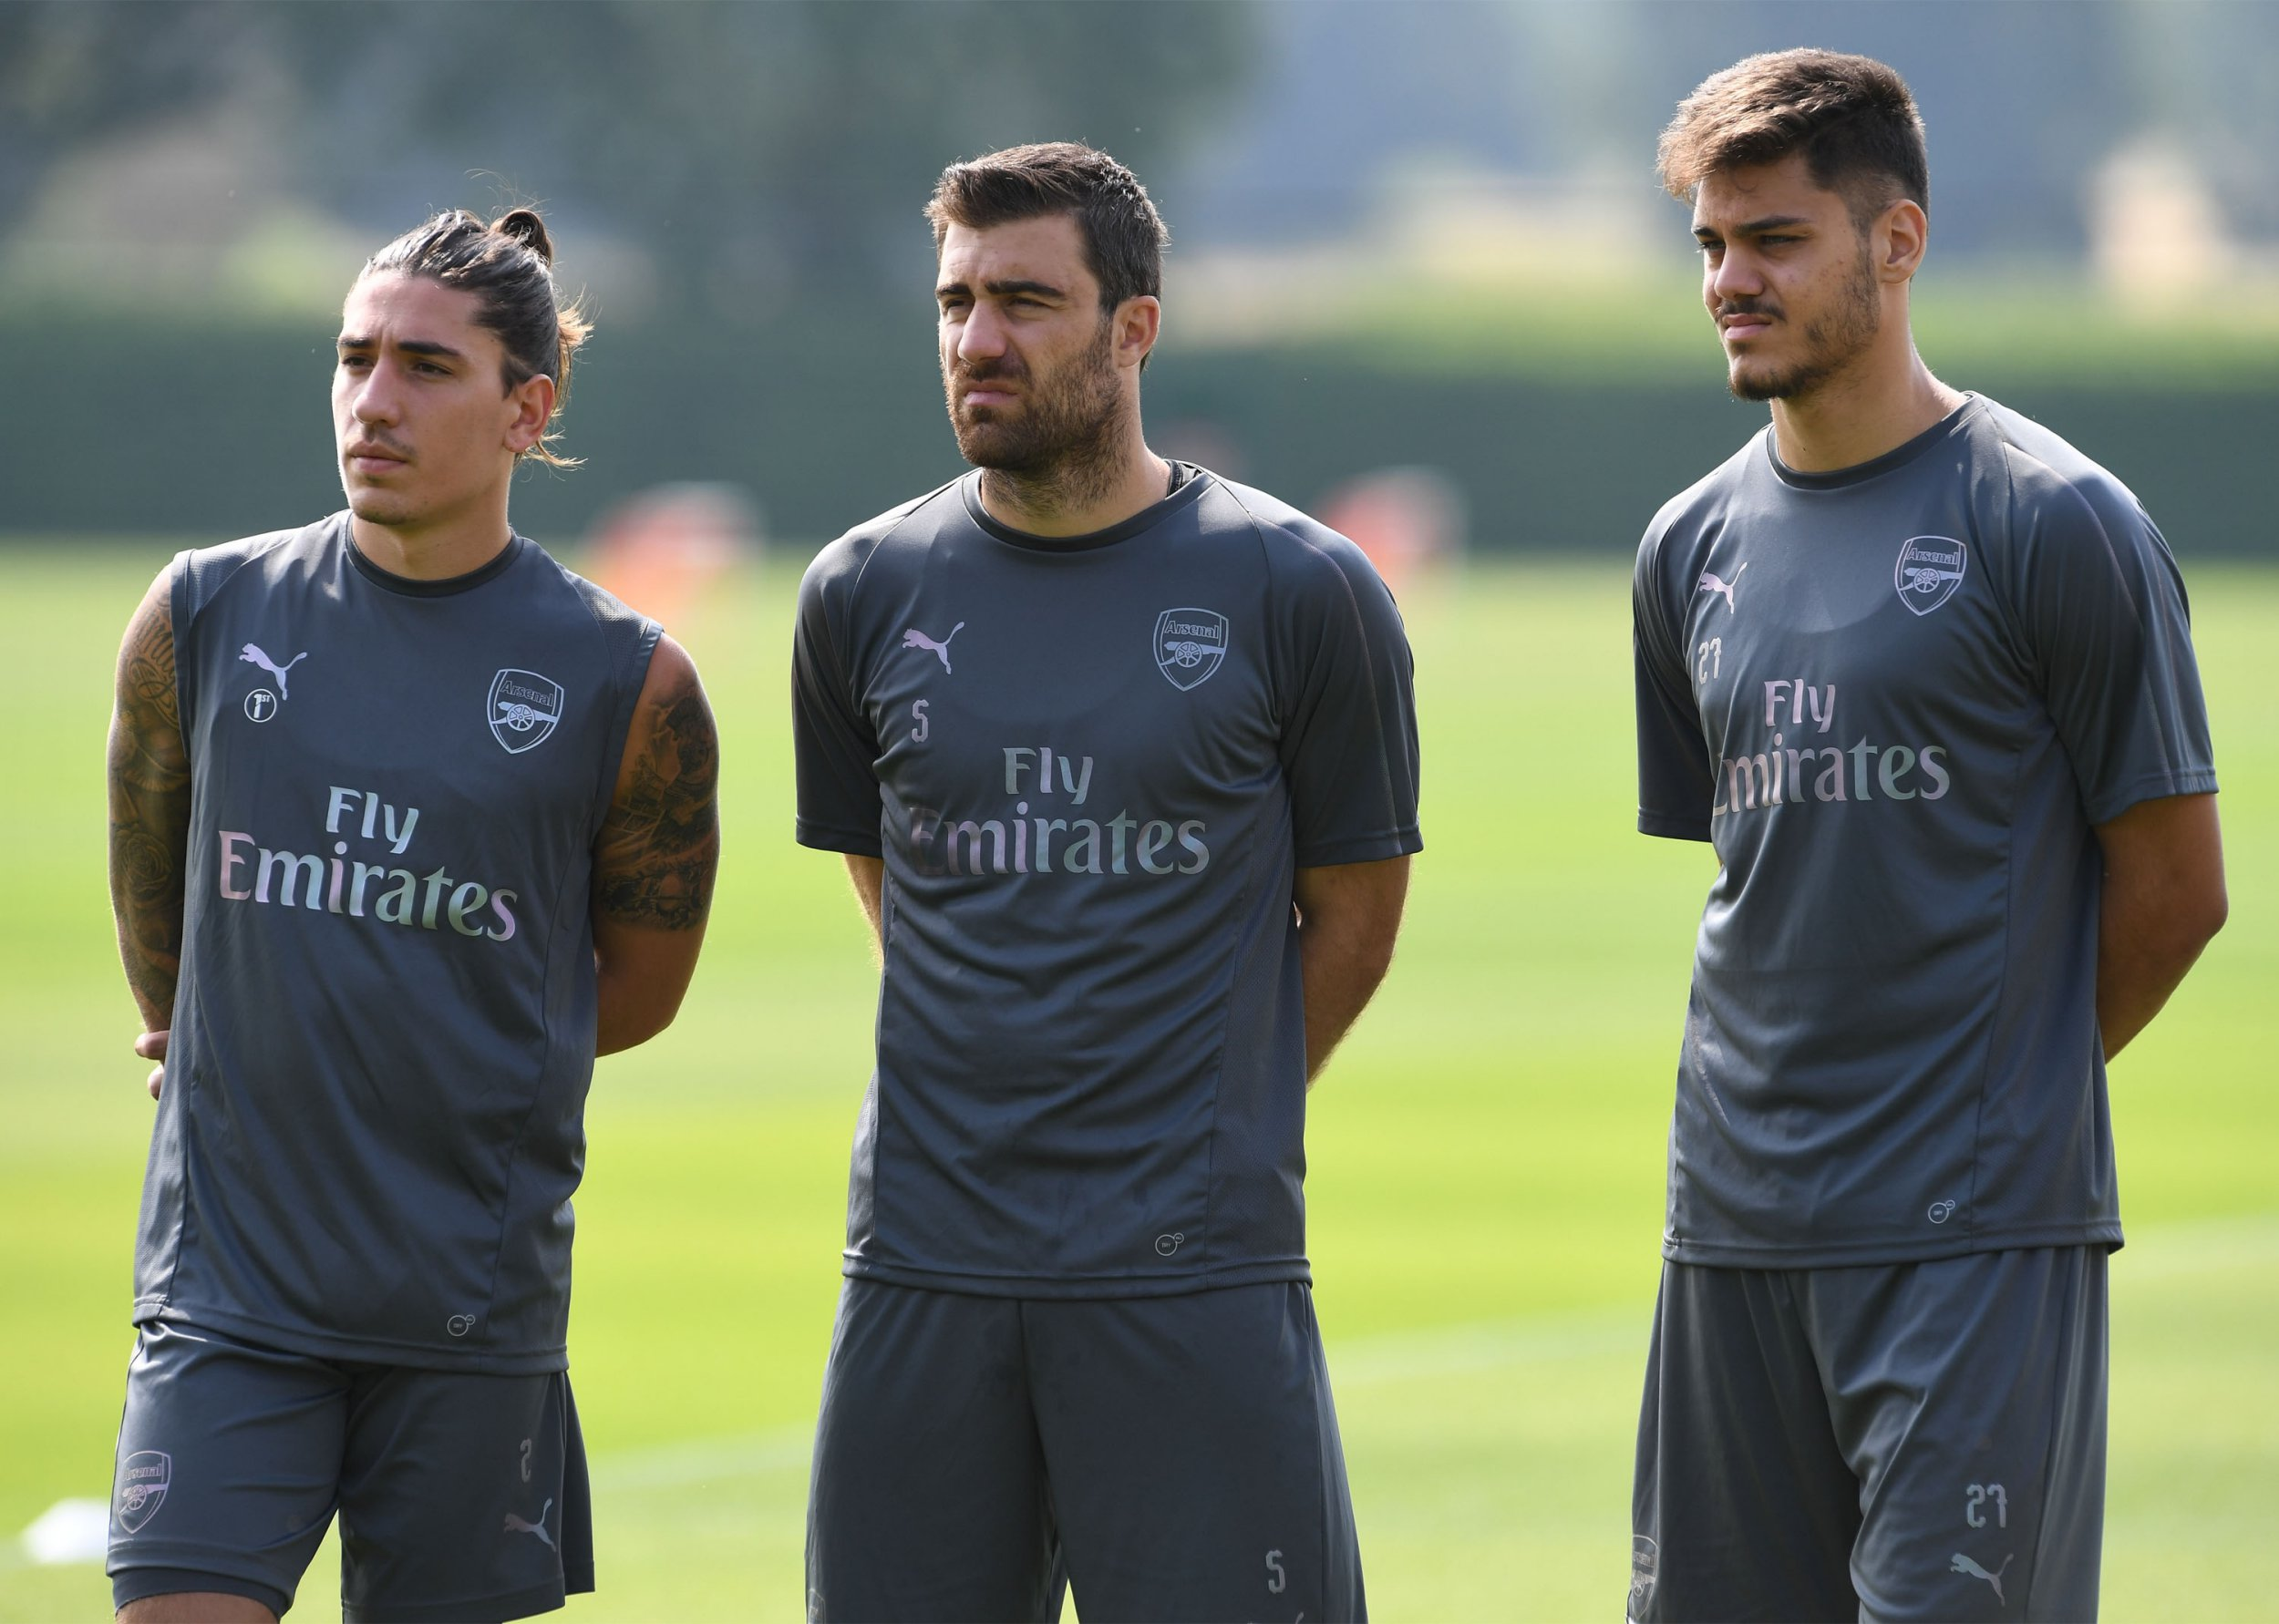 ST ALBANS, ENGLAND - JULY 05: Hector Bellerin, Sokratis Papastathopoulos and Konstantinos Mavropanos of Arsenal during pre-season training session at London Colney on July 5, 2018 in St Albans, England. (Photo by David Price/Arsenal FC via Getty Images)